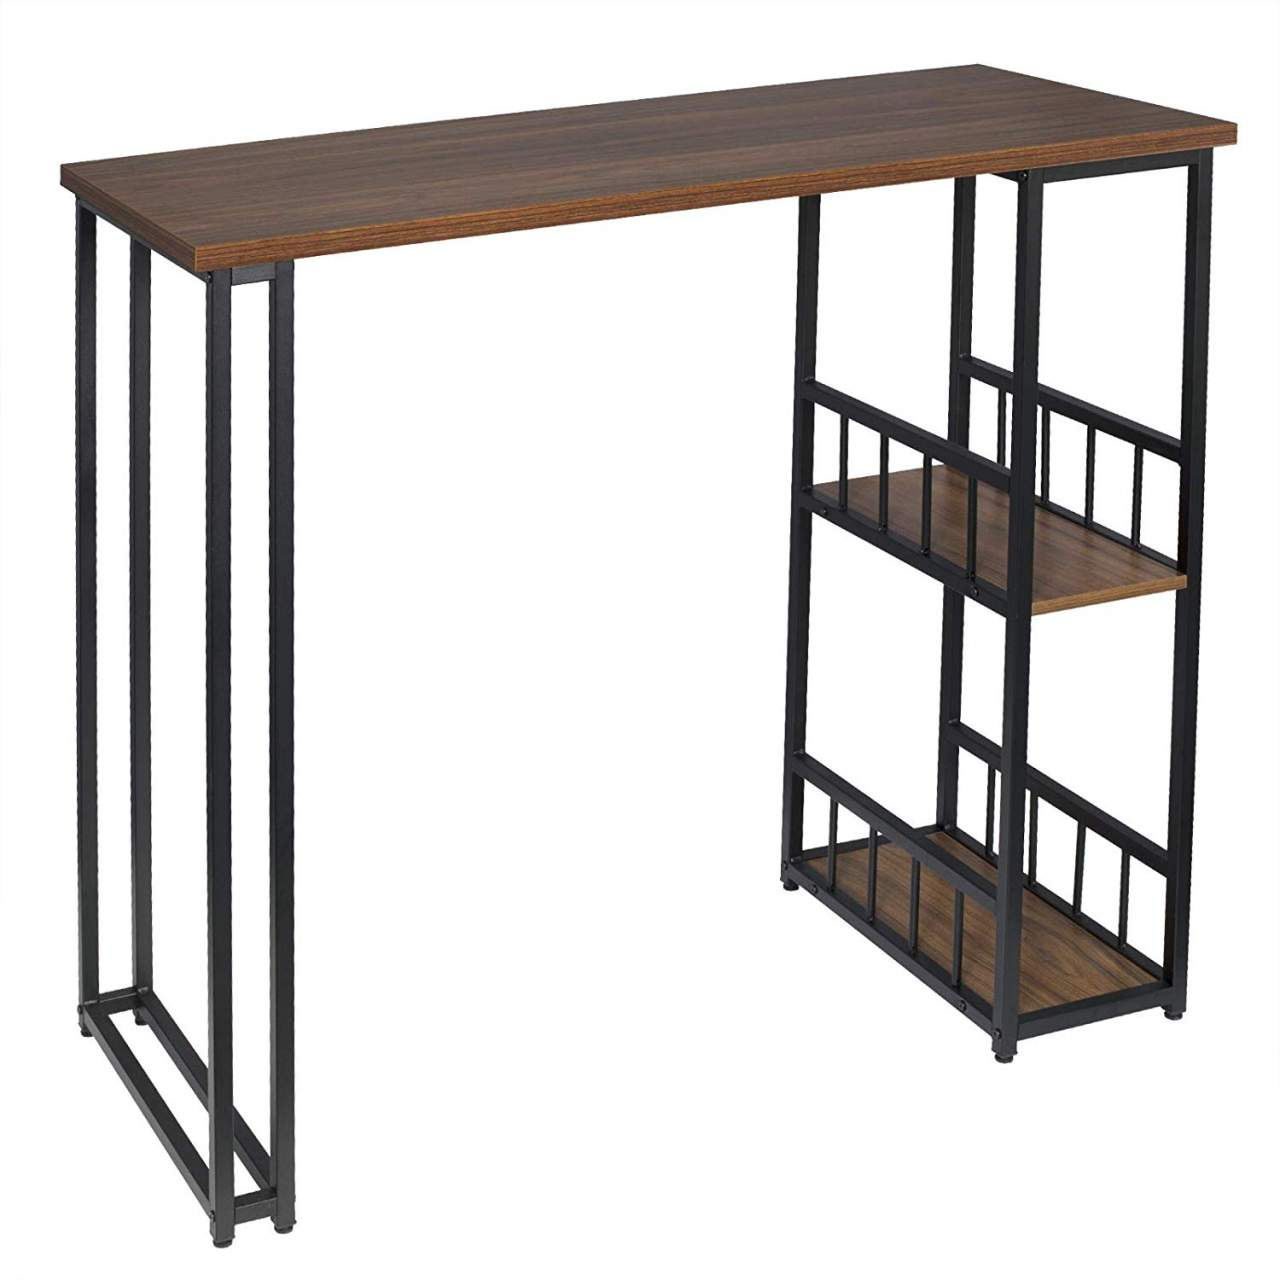 Kitchen Bar Counter Table With 2 Tier Storage Rack Shelves For Beverage Display Shelving Strong Metal Frame Woltu Eu